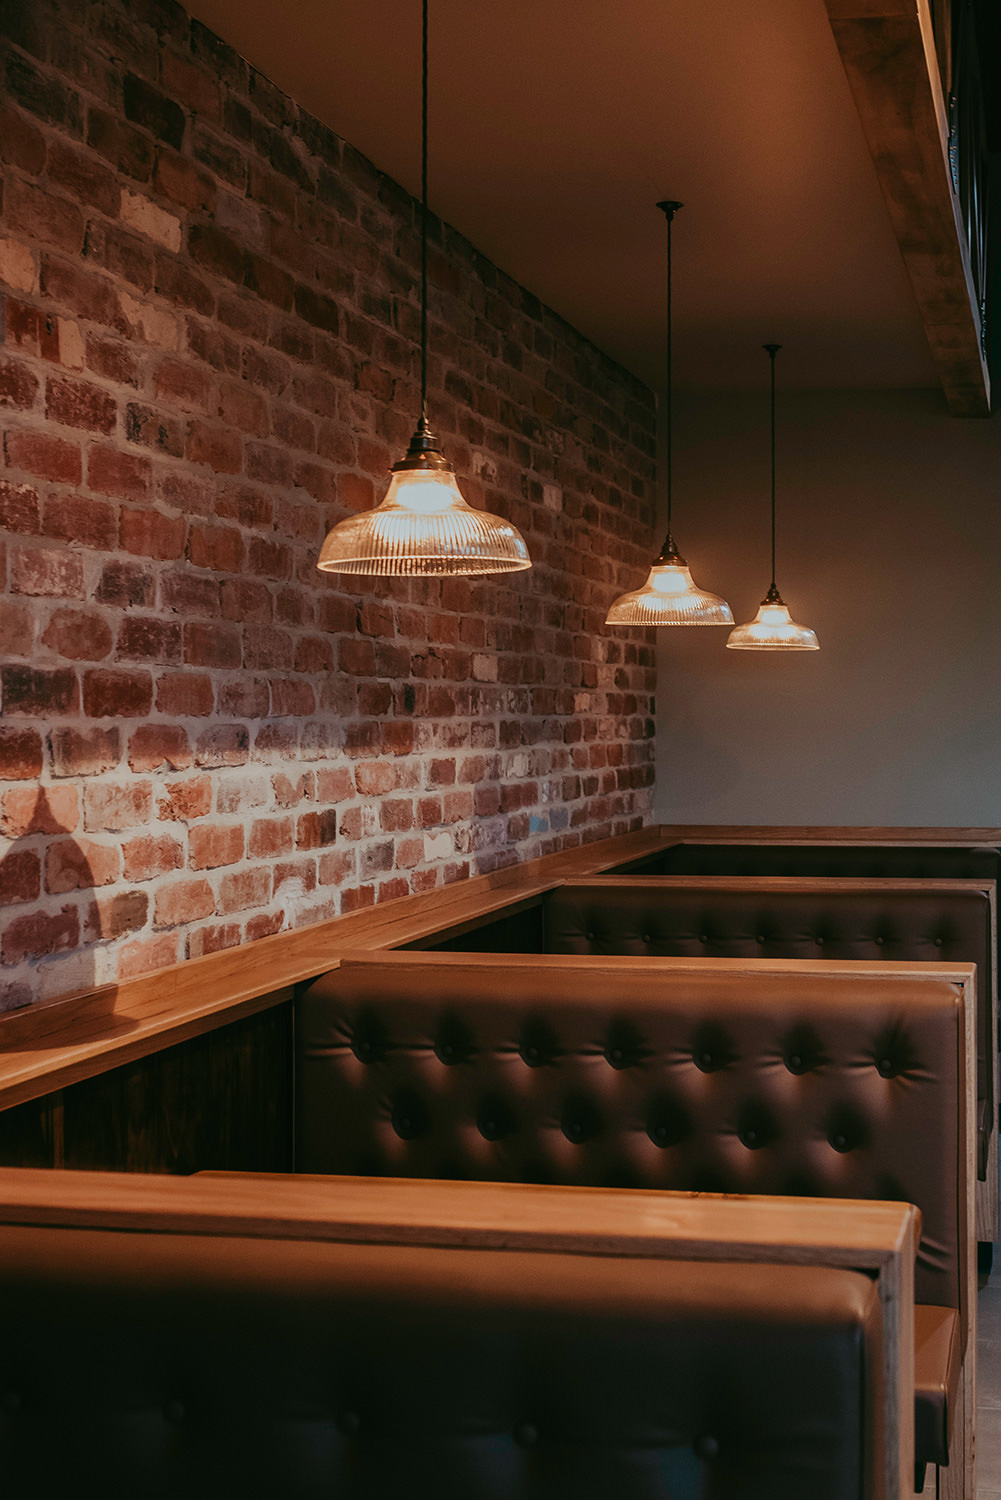 Coffee shop with booth seating and overhanging vintage lights.